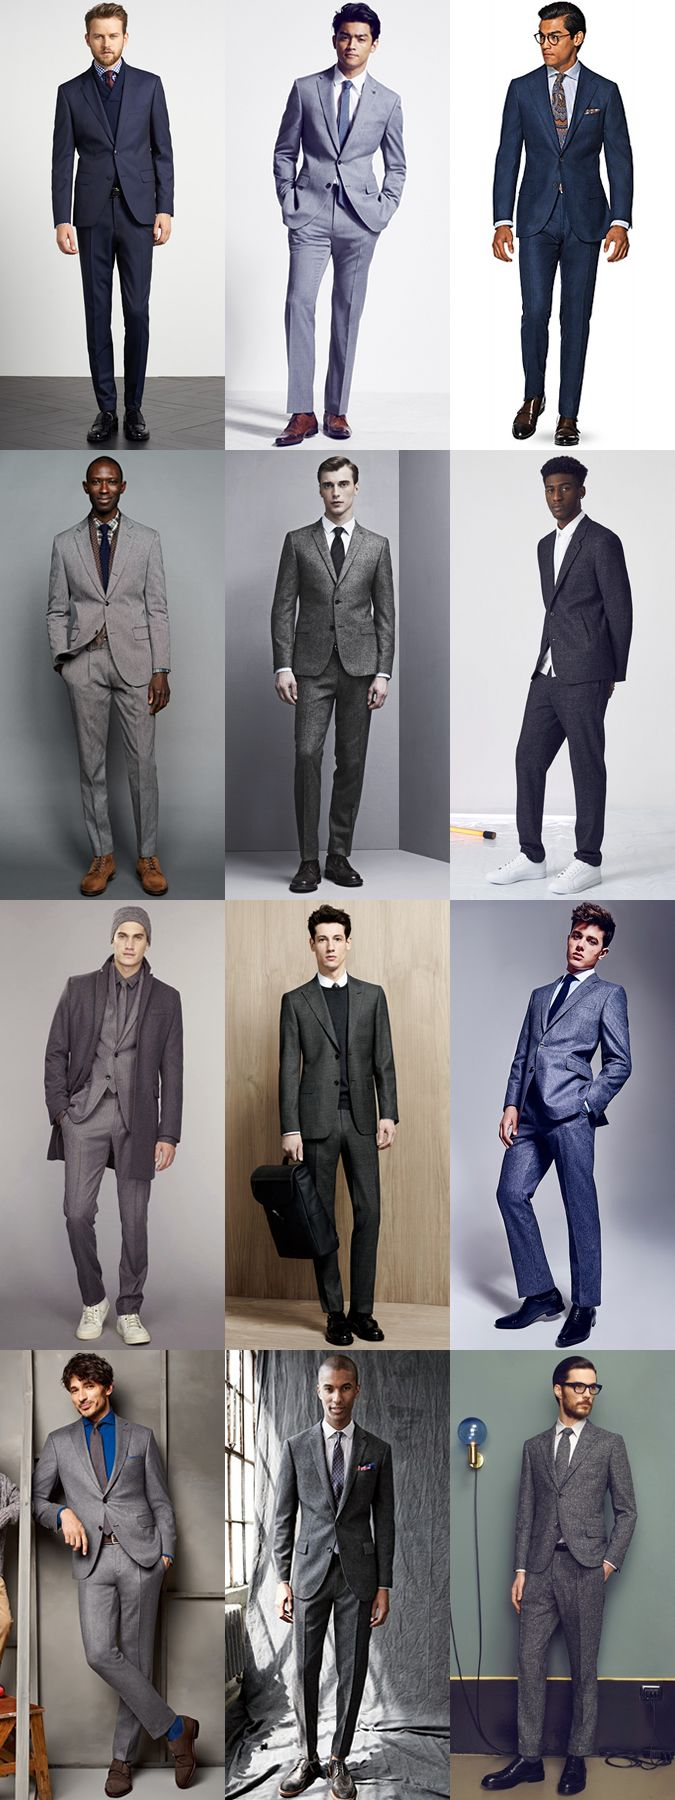 Flannel lookbook men  Menus Neutral Flannel and Wool Suits Outfit Inspiration Lookbook